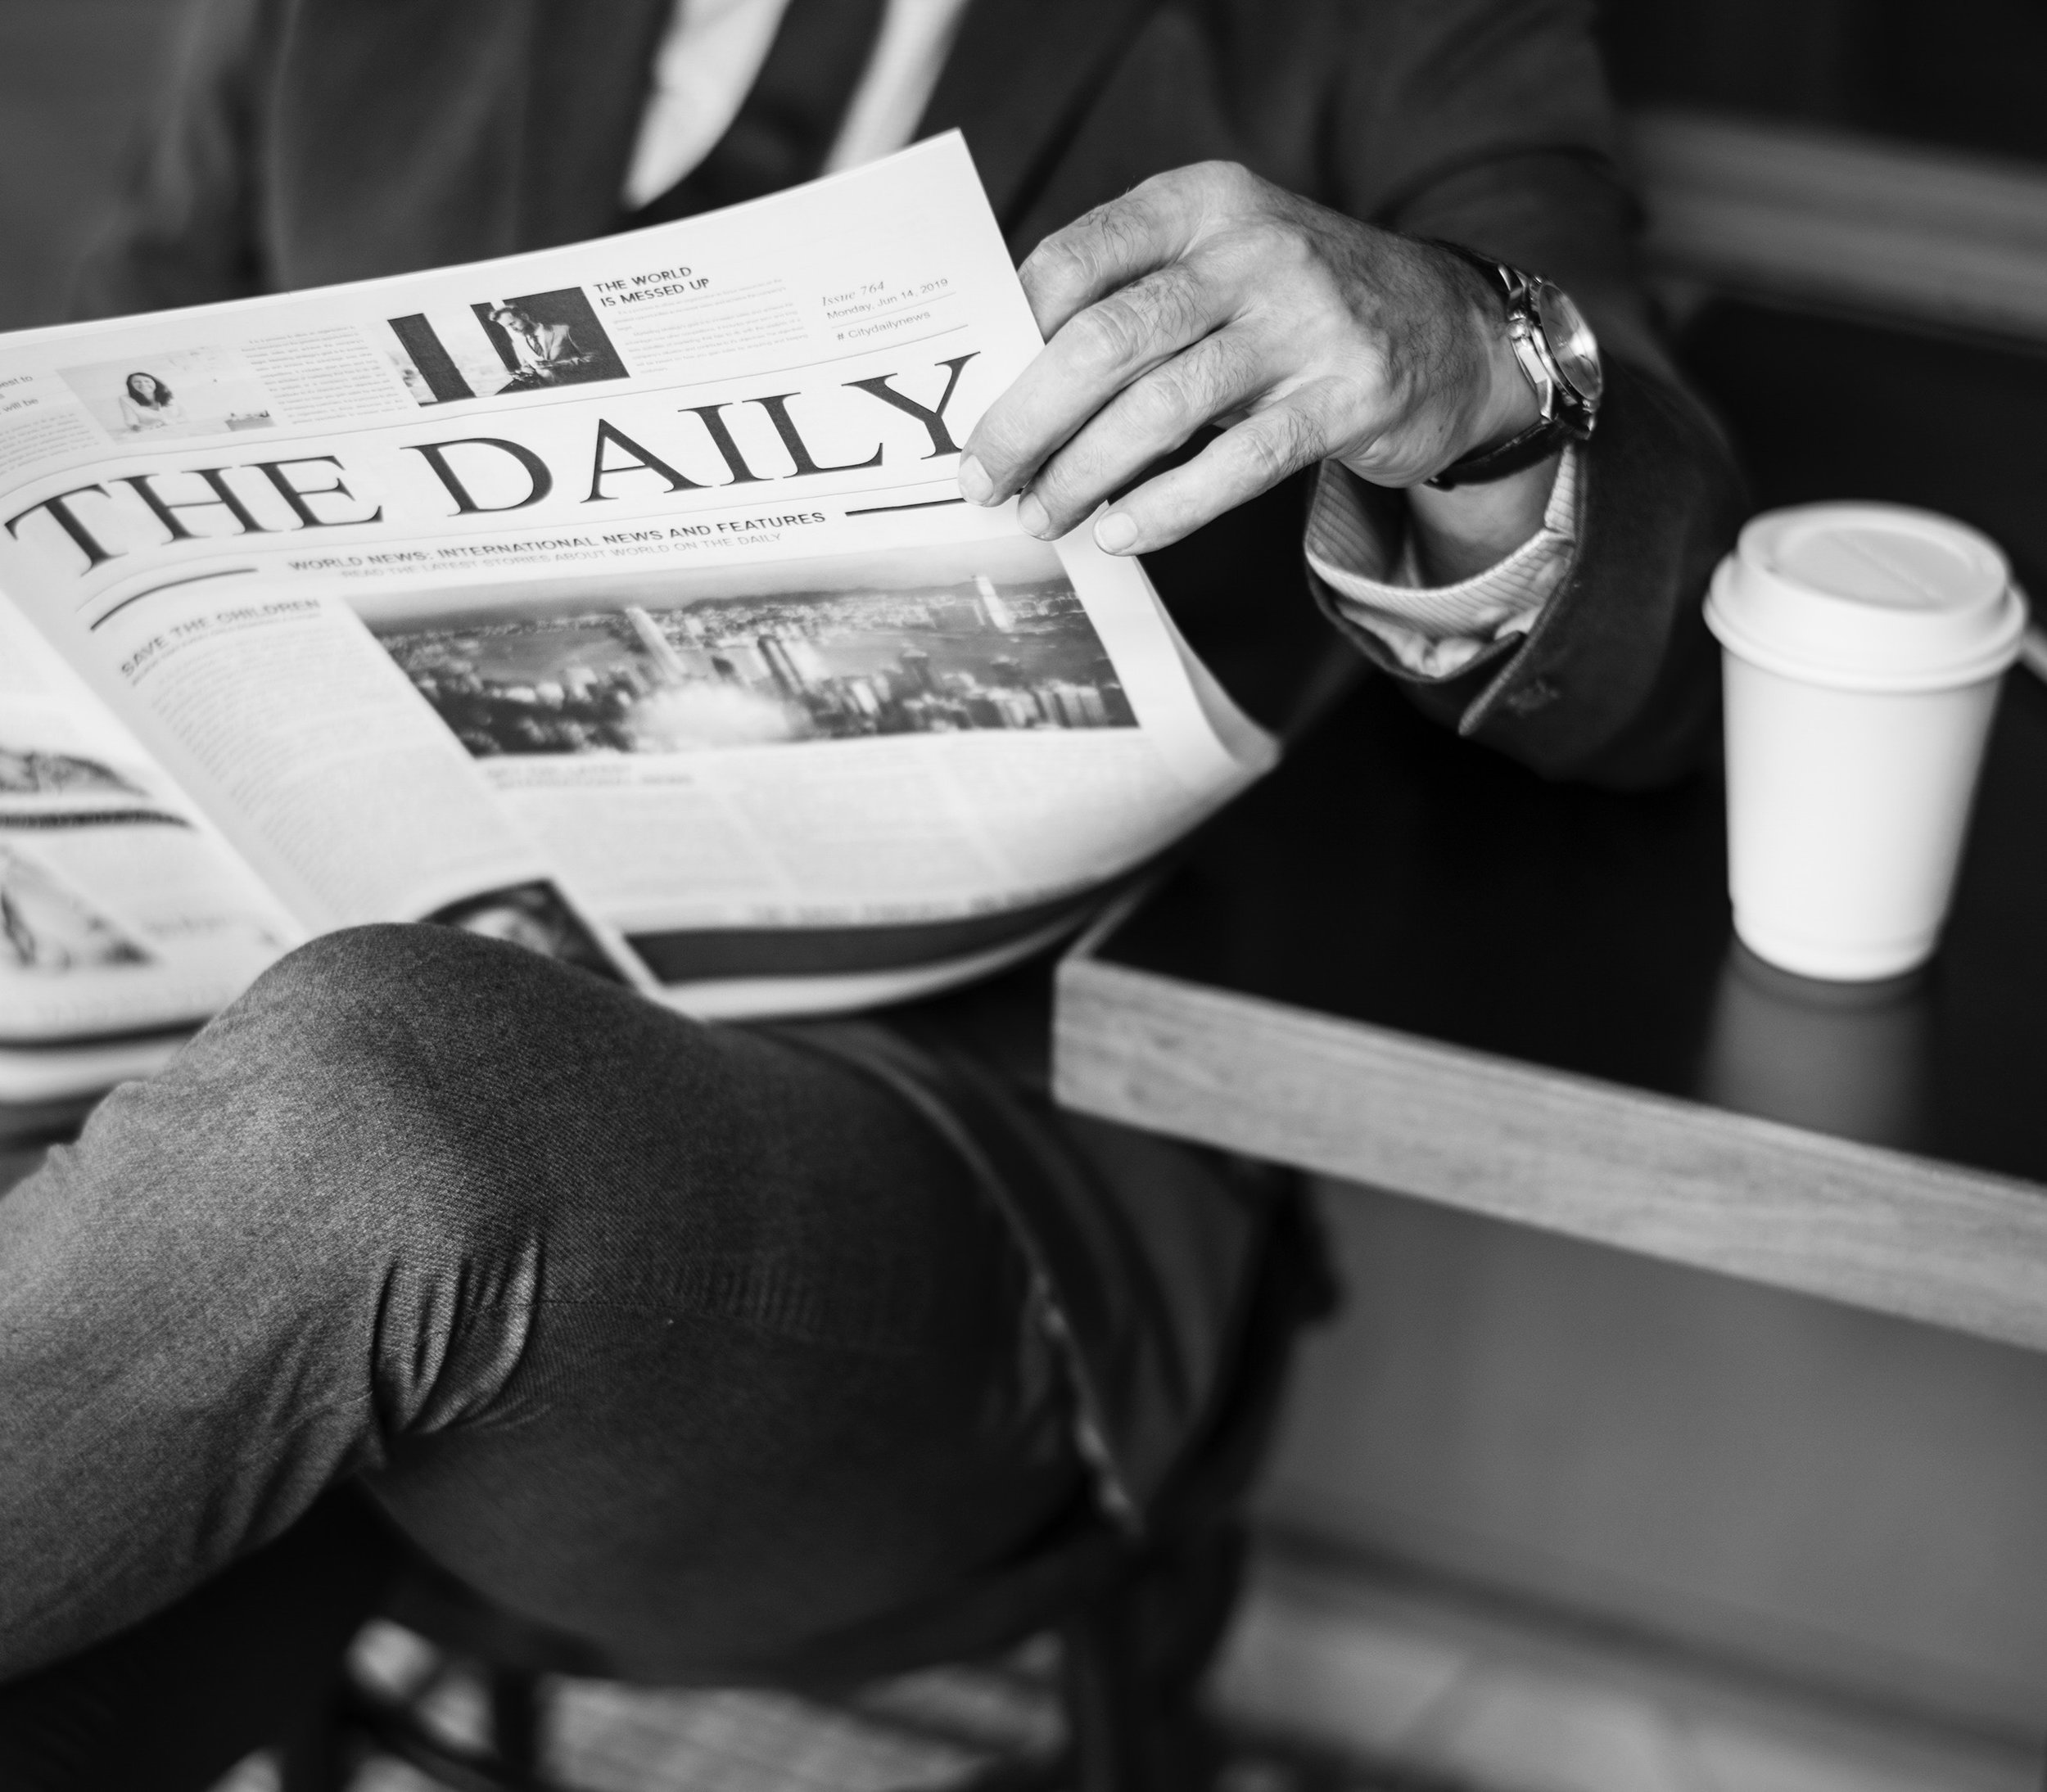 A man sits on a bench reading a newspaper with a cup of coffee beside him.